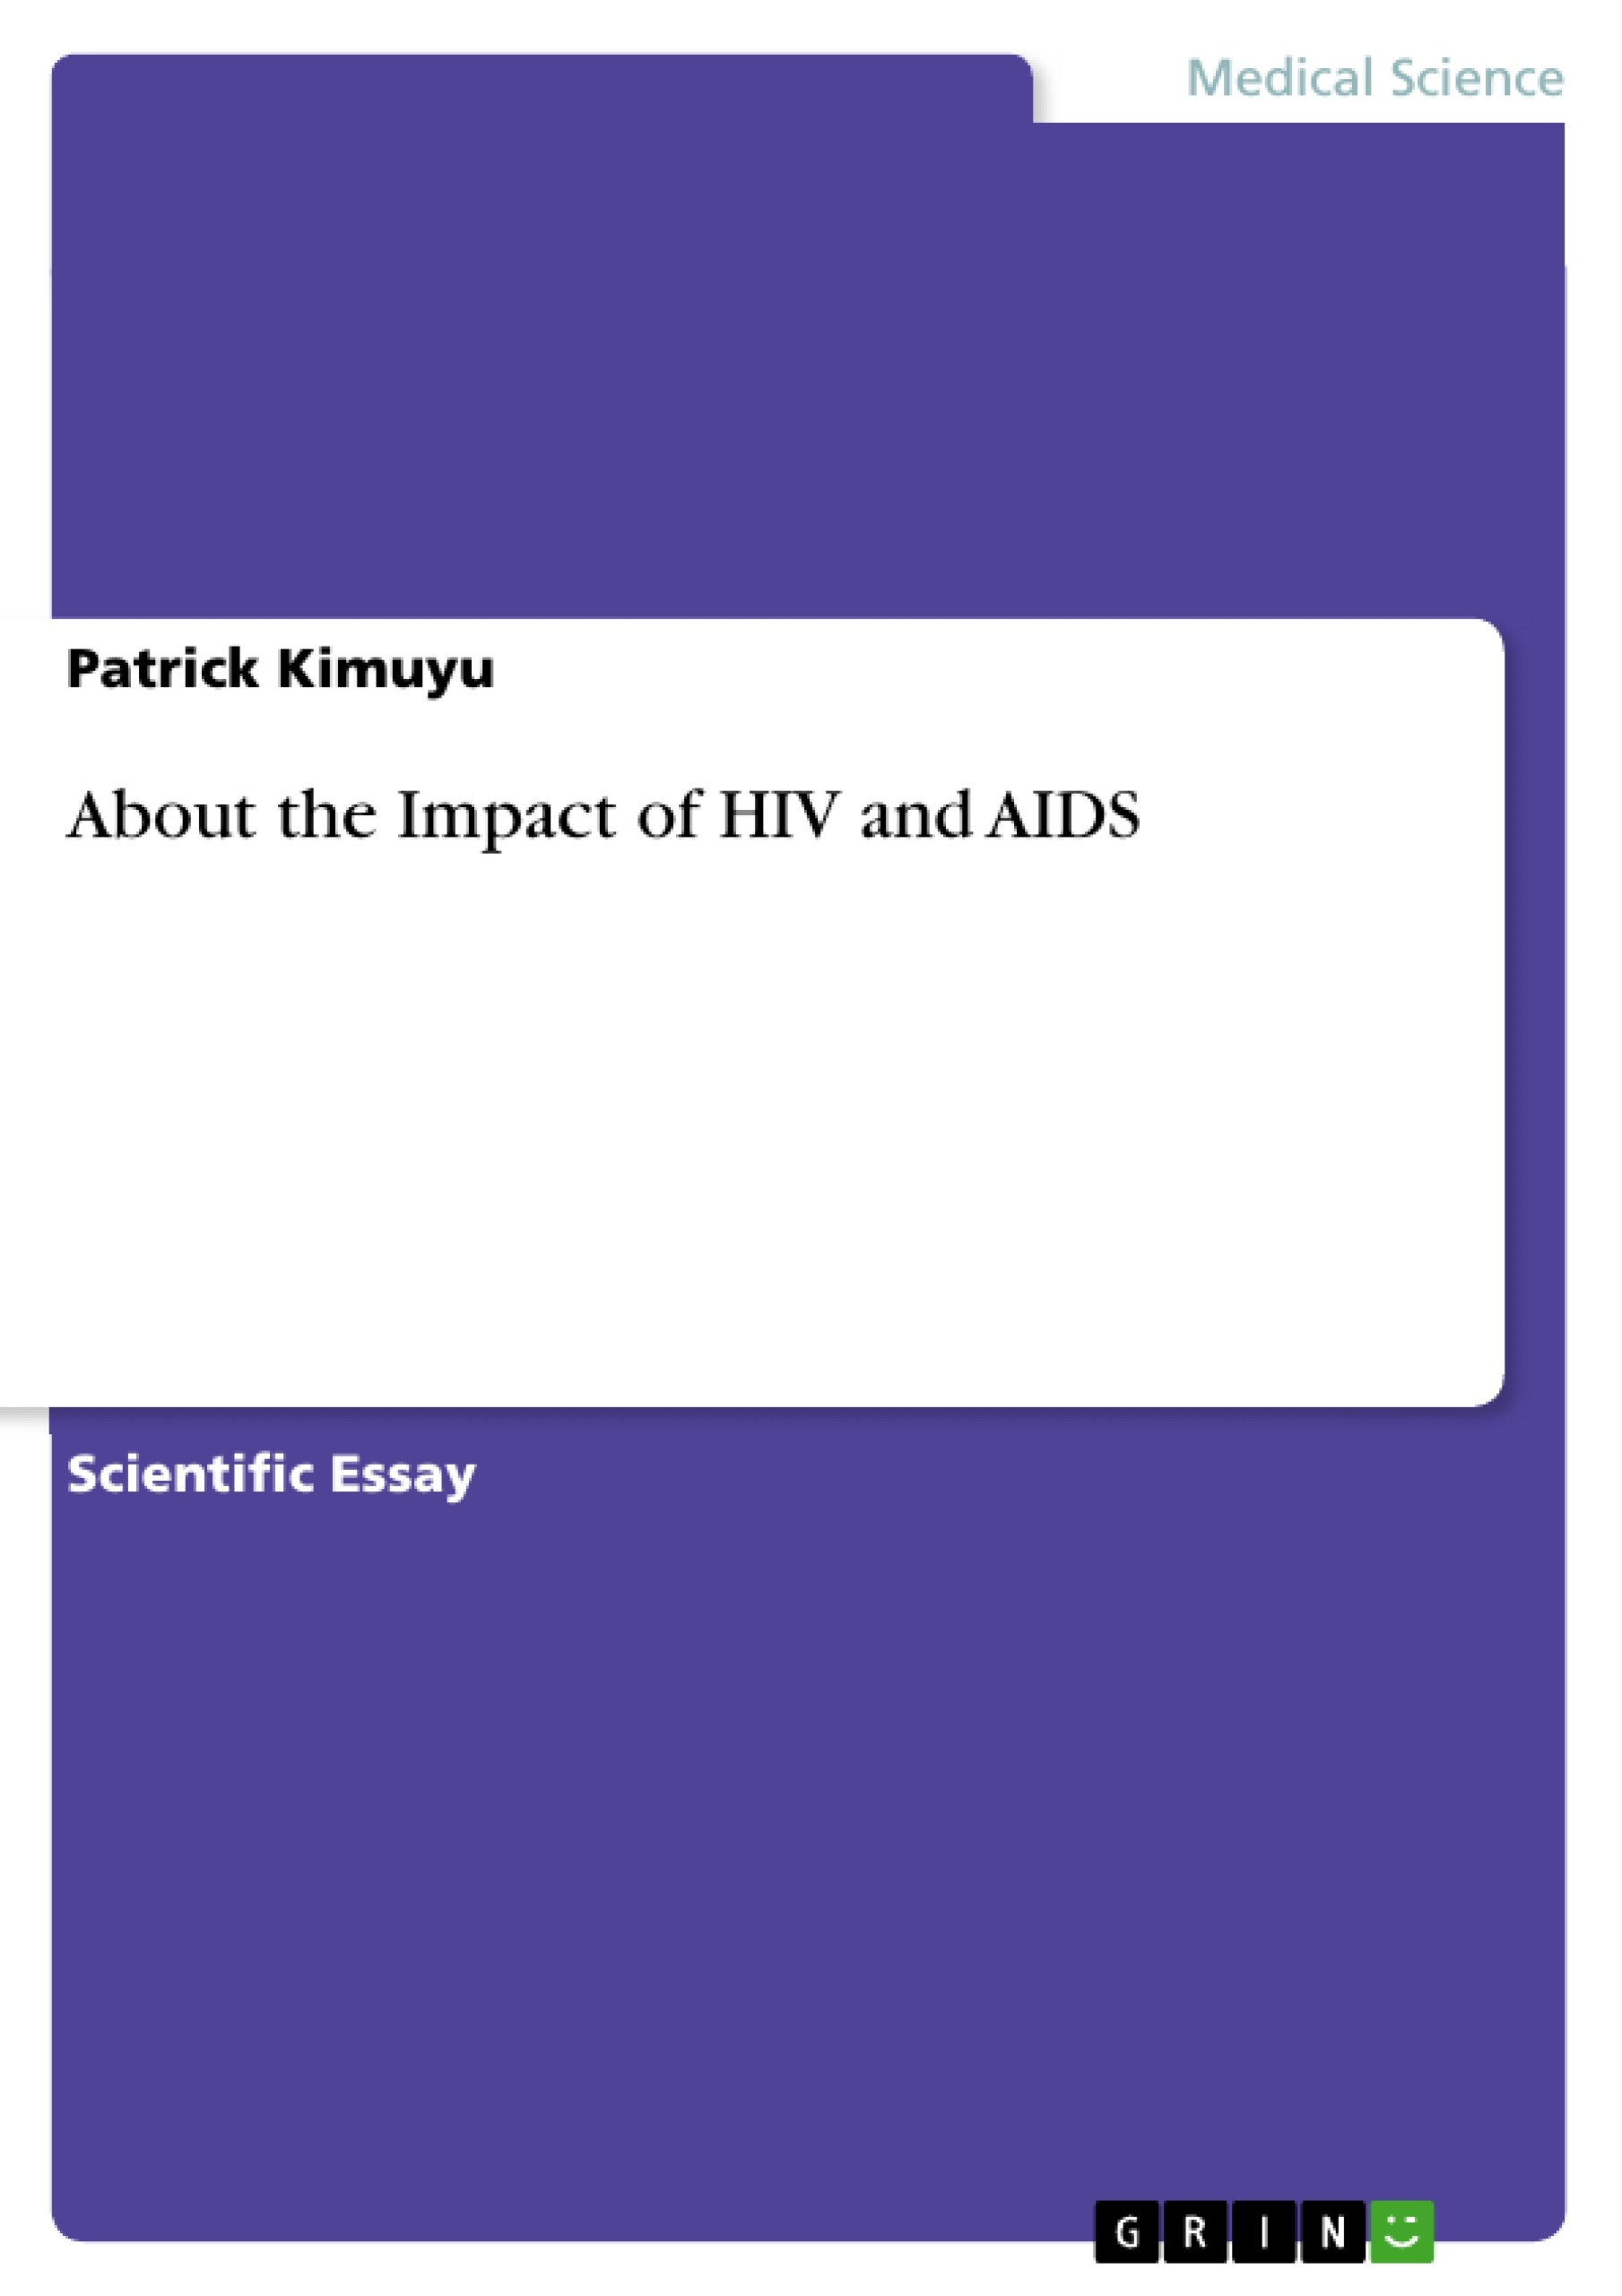 About the Impact of HIV and AIDS